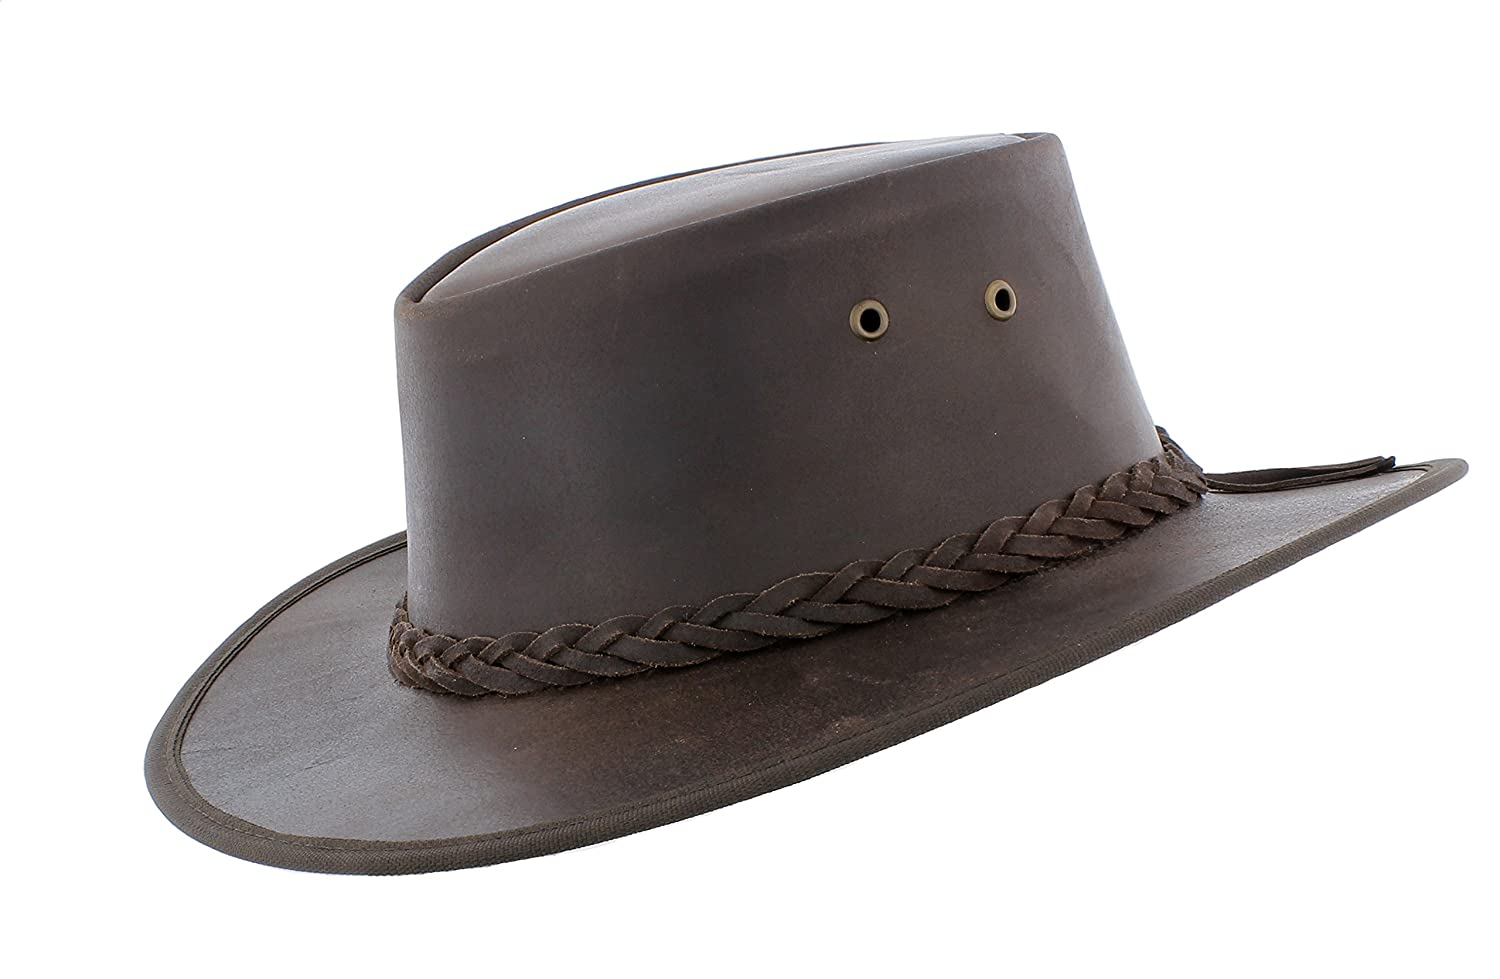 Outback Real Leather Bush Hat With Chin Strap (Aussie/Western/Australian)